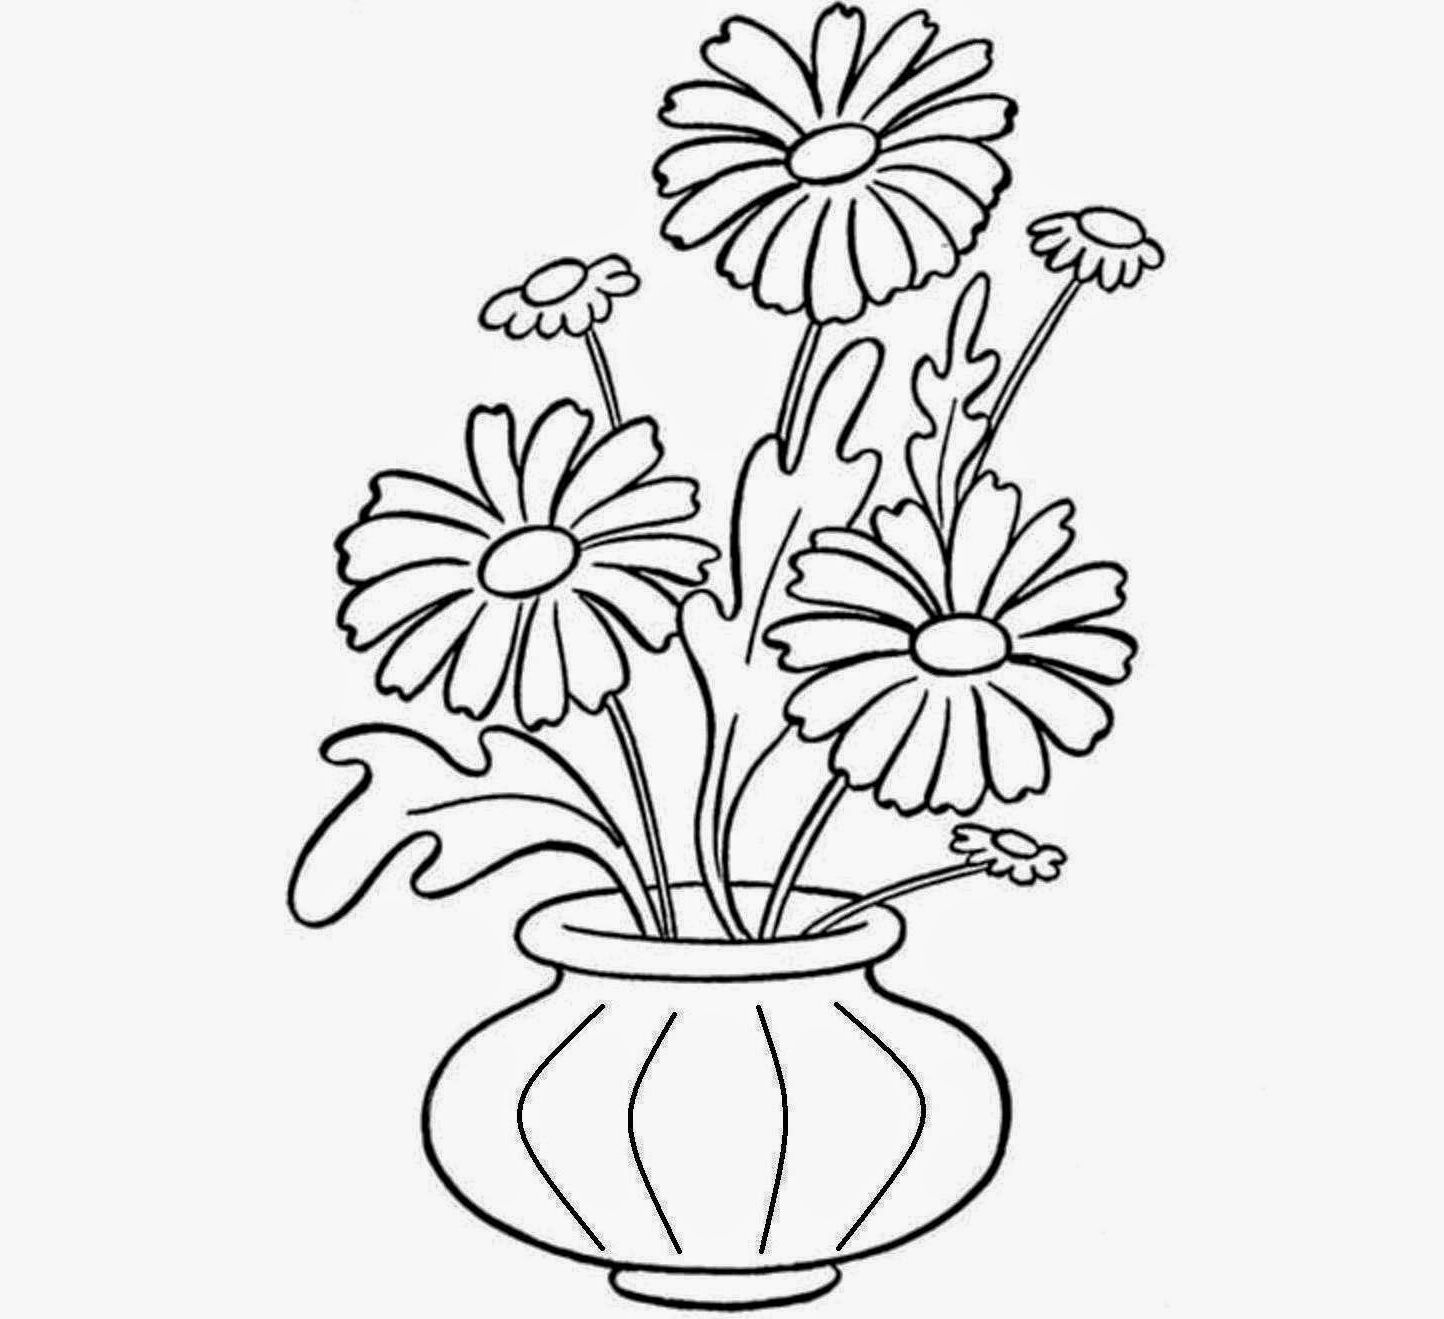 24 Inspirational Easy Drawing Of Flower Vase Flower Drawing Easy Drawings Flower Vases